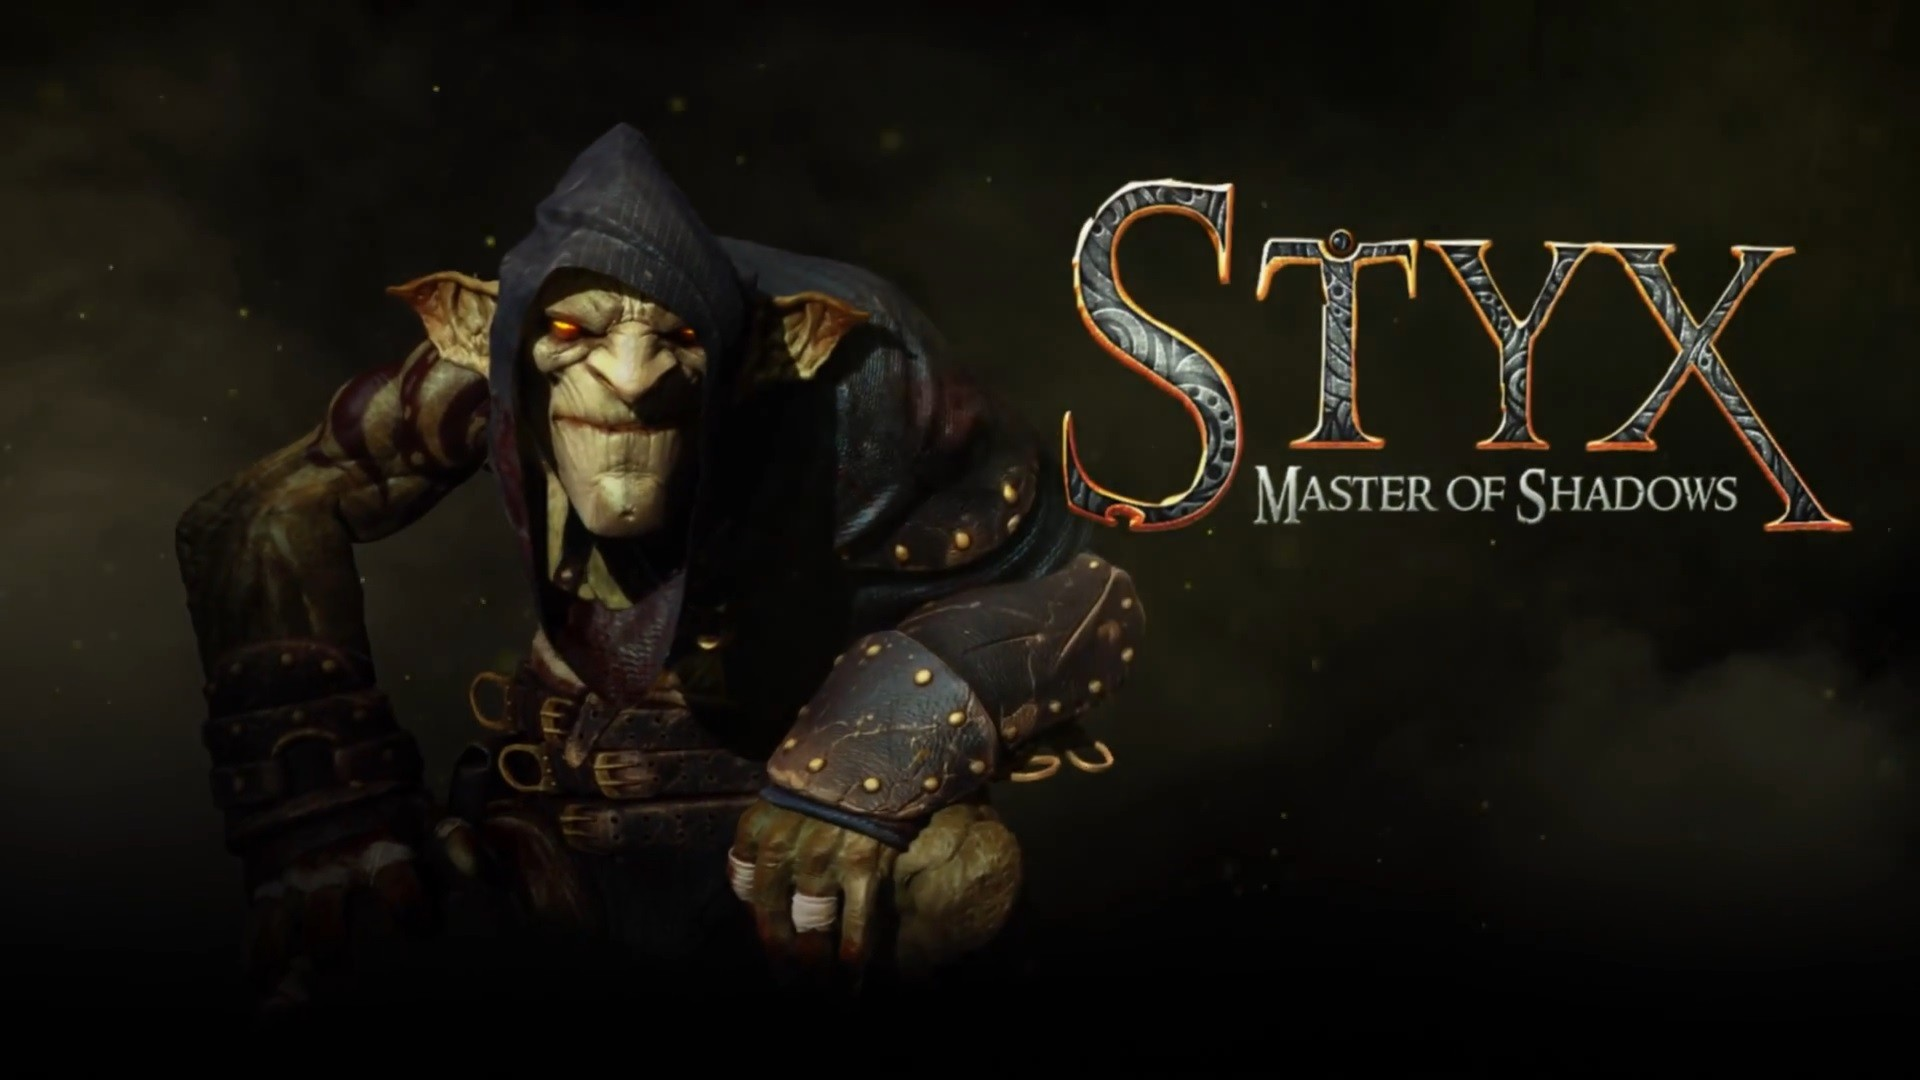 Styx — Masters of Shadows